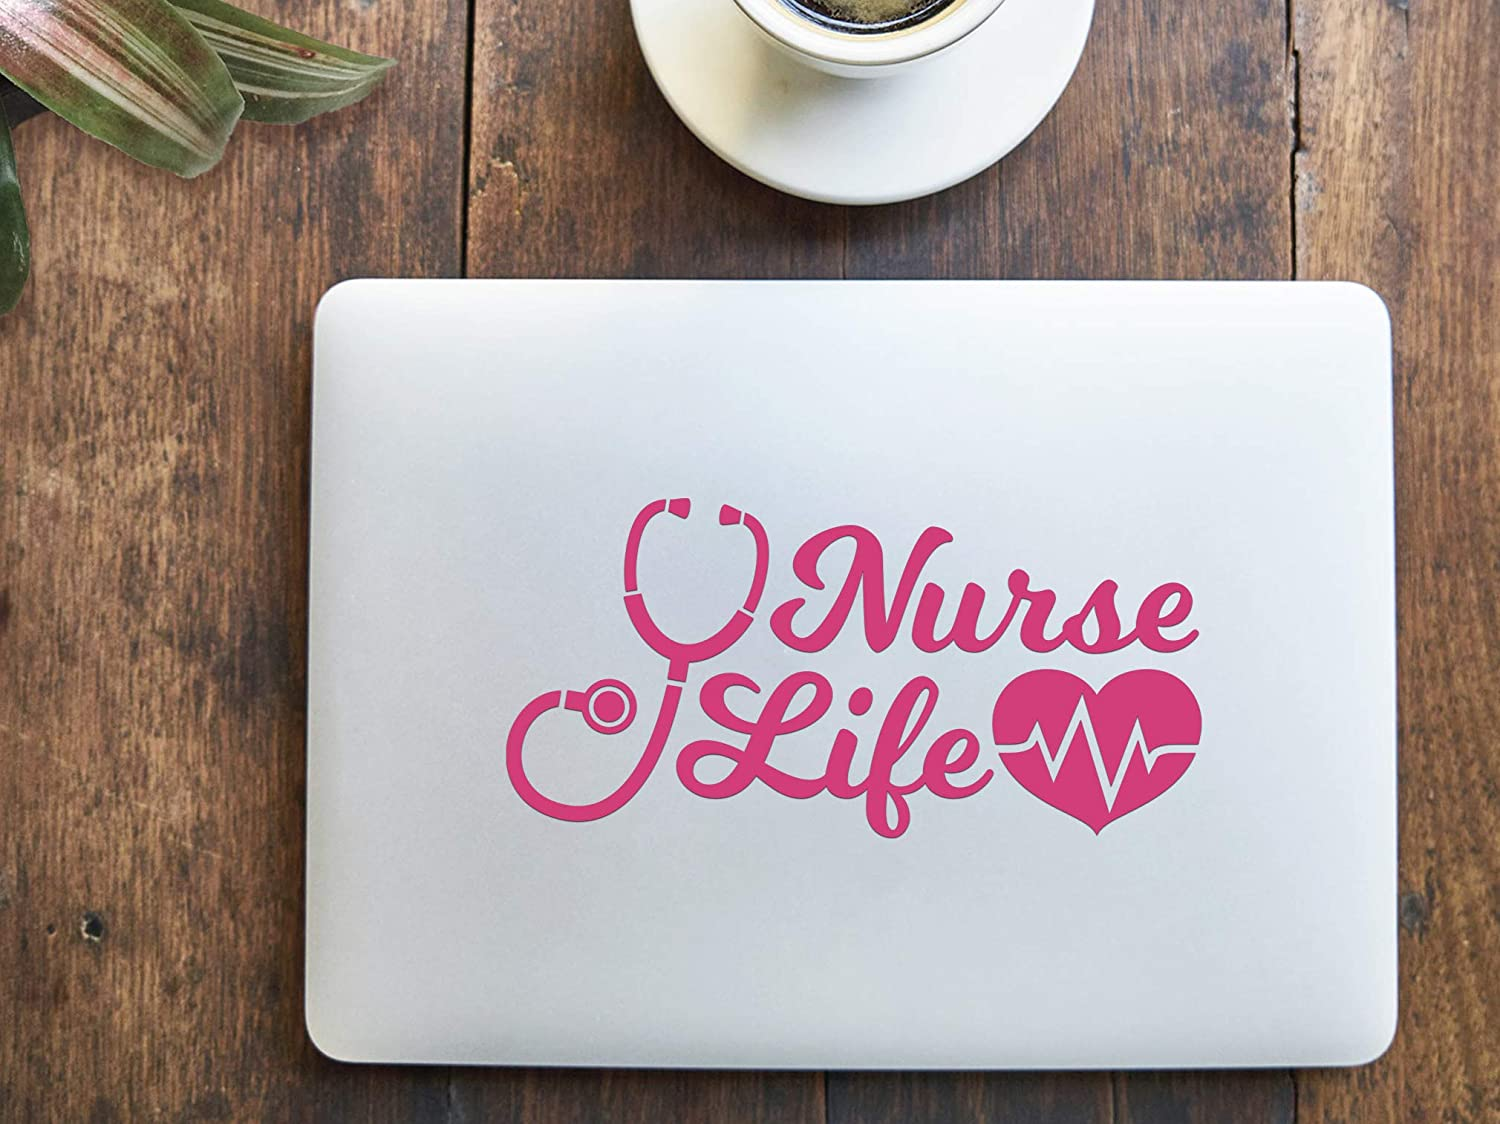 Pink Nurse Life Stethoscope Heartbeat Vinyl Car Window Decal Vehicle Bumper Sticker 6.5 x 3.2 inches